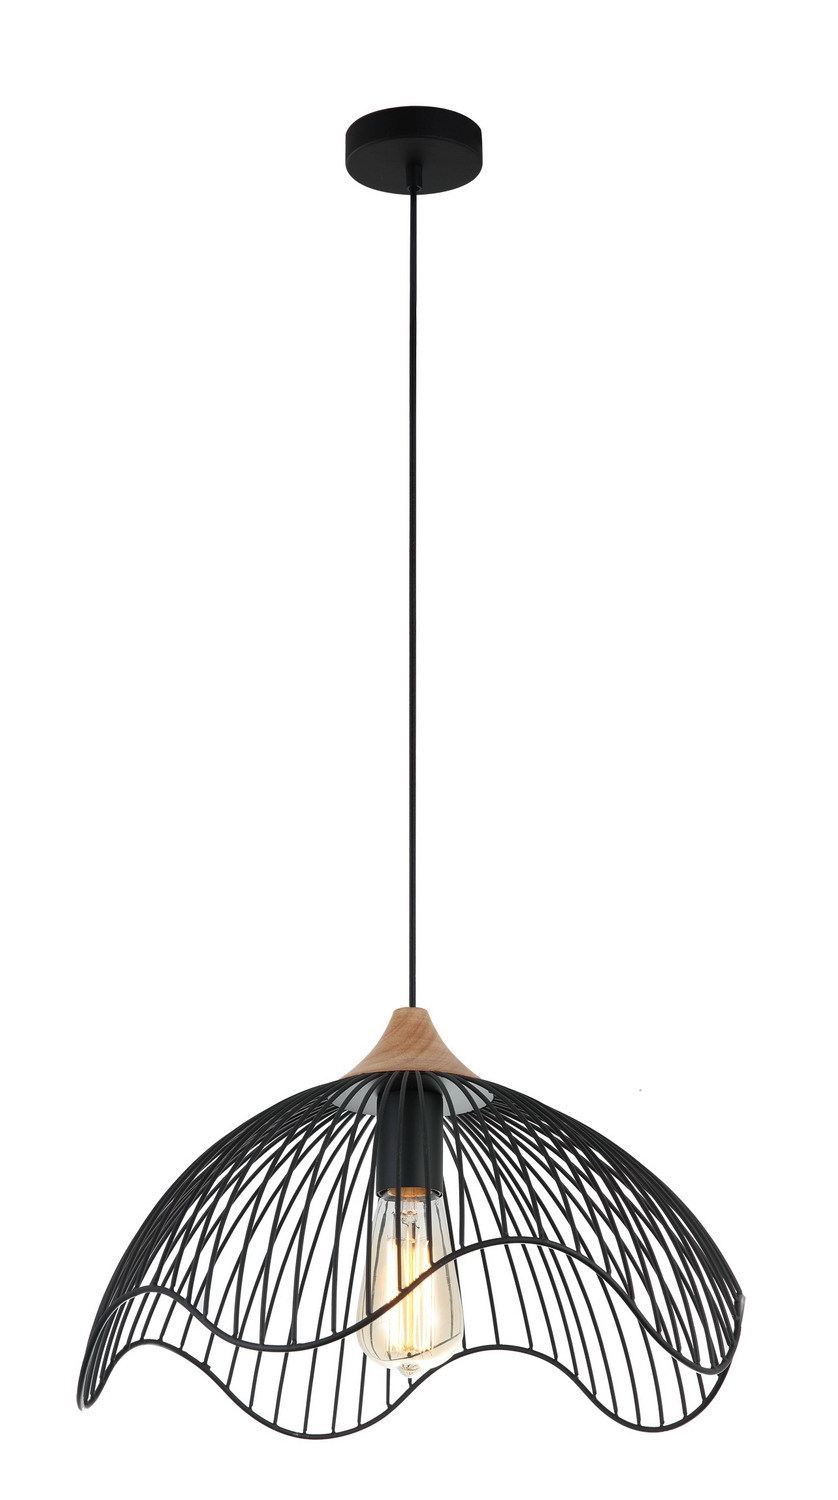 Pendant Es 72W Blk Iron + Wood Dome (Wavy Edge Regarding Amara 3 Light Dome Pendants (Image 27 of 30)